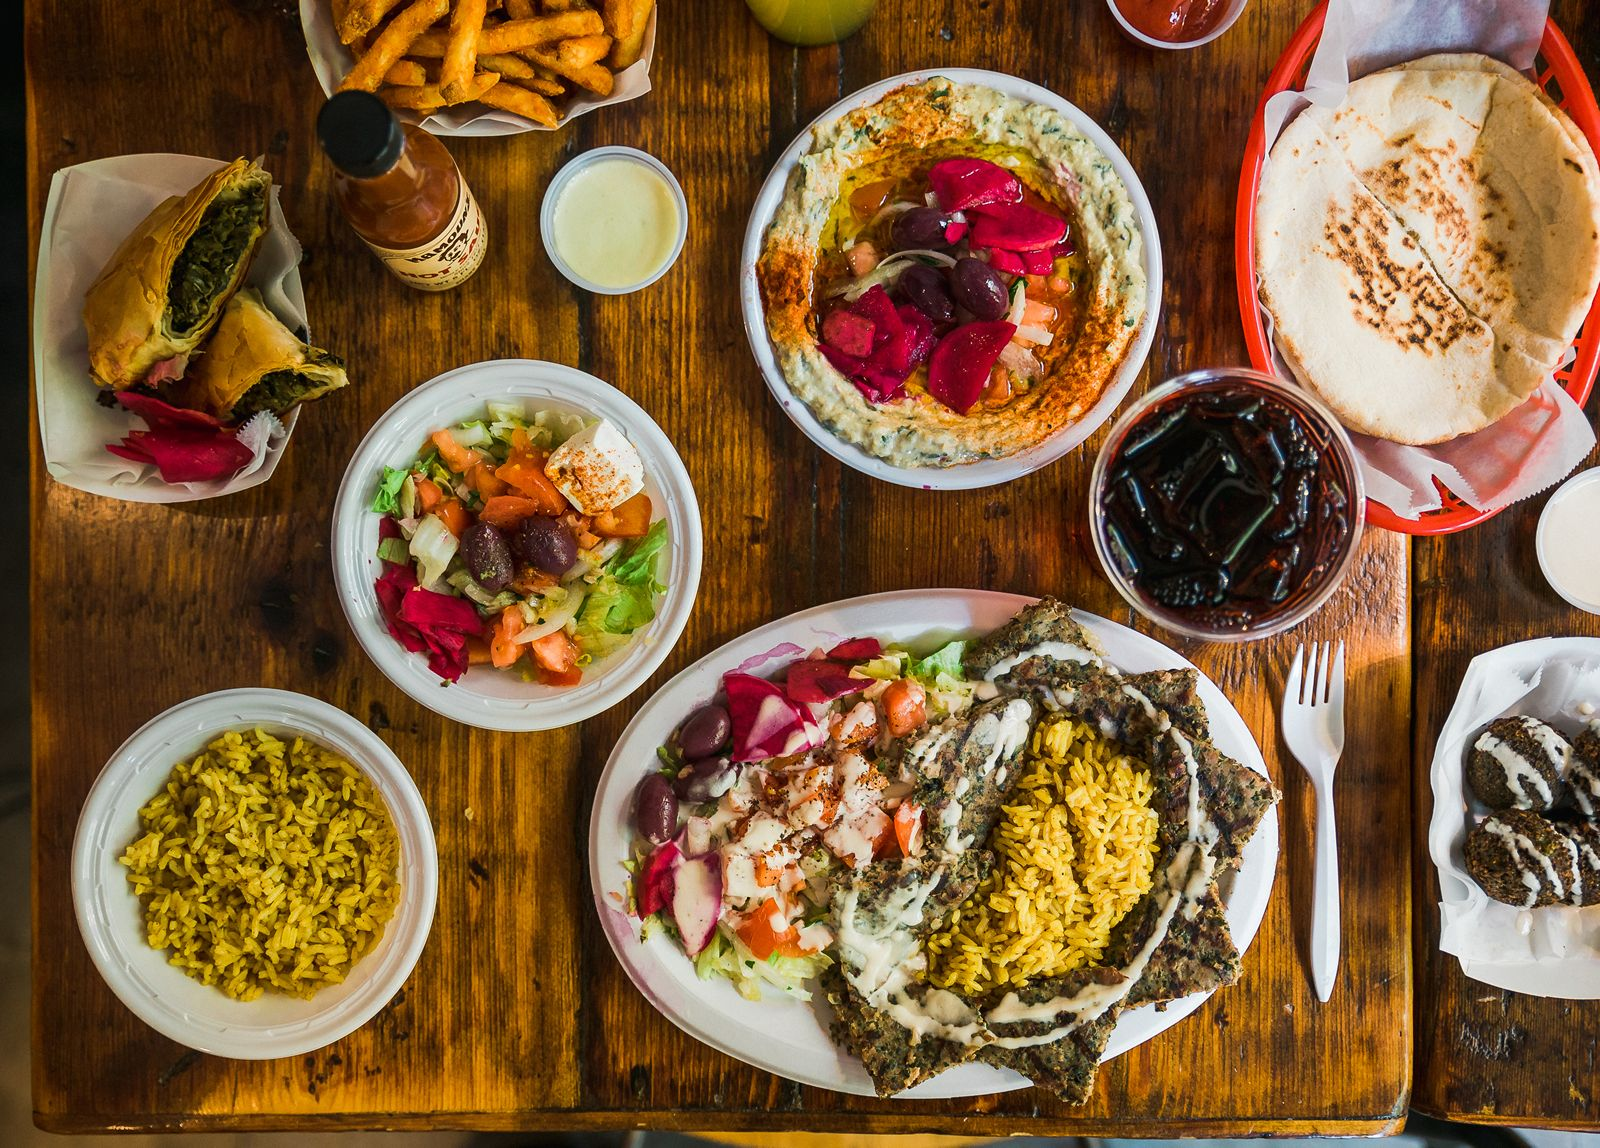 Mamoun's Falafel to Open First Texas Location in Dallas on Saturday, February 10